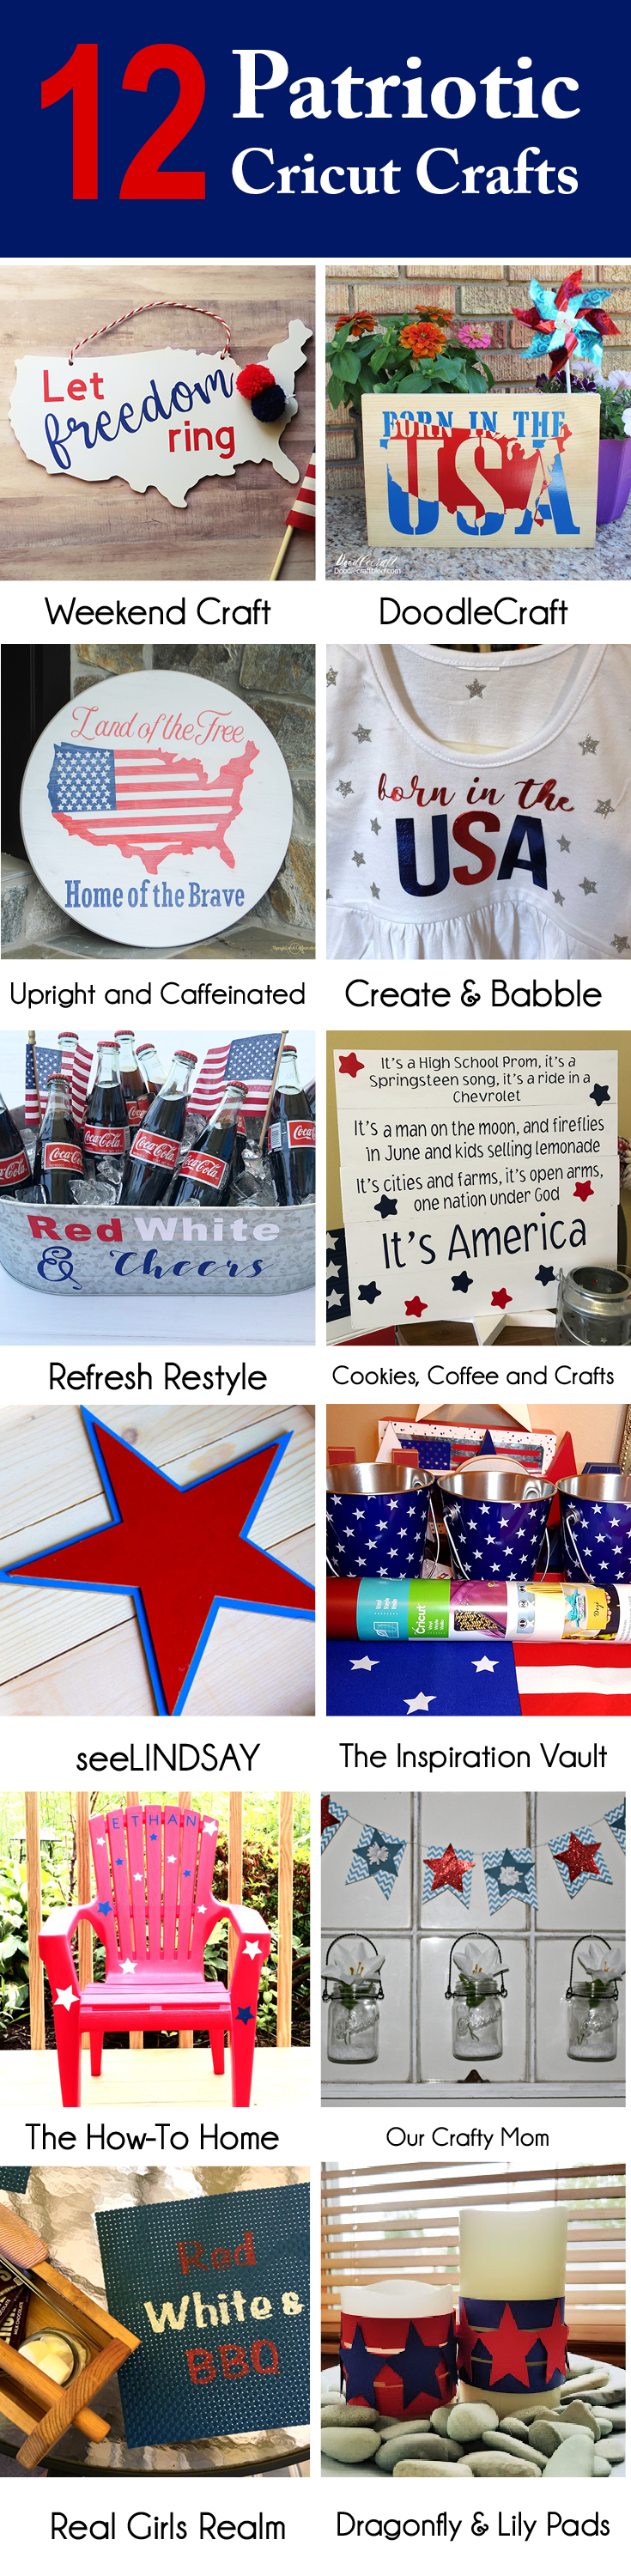 12 Patriotic Crafts